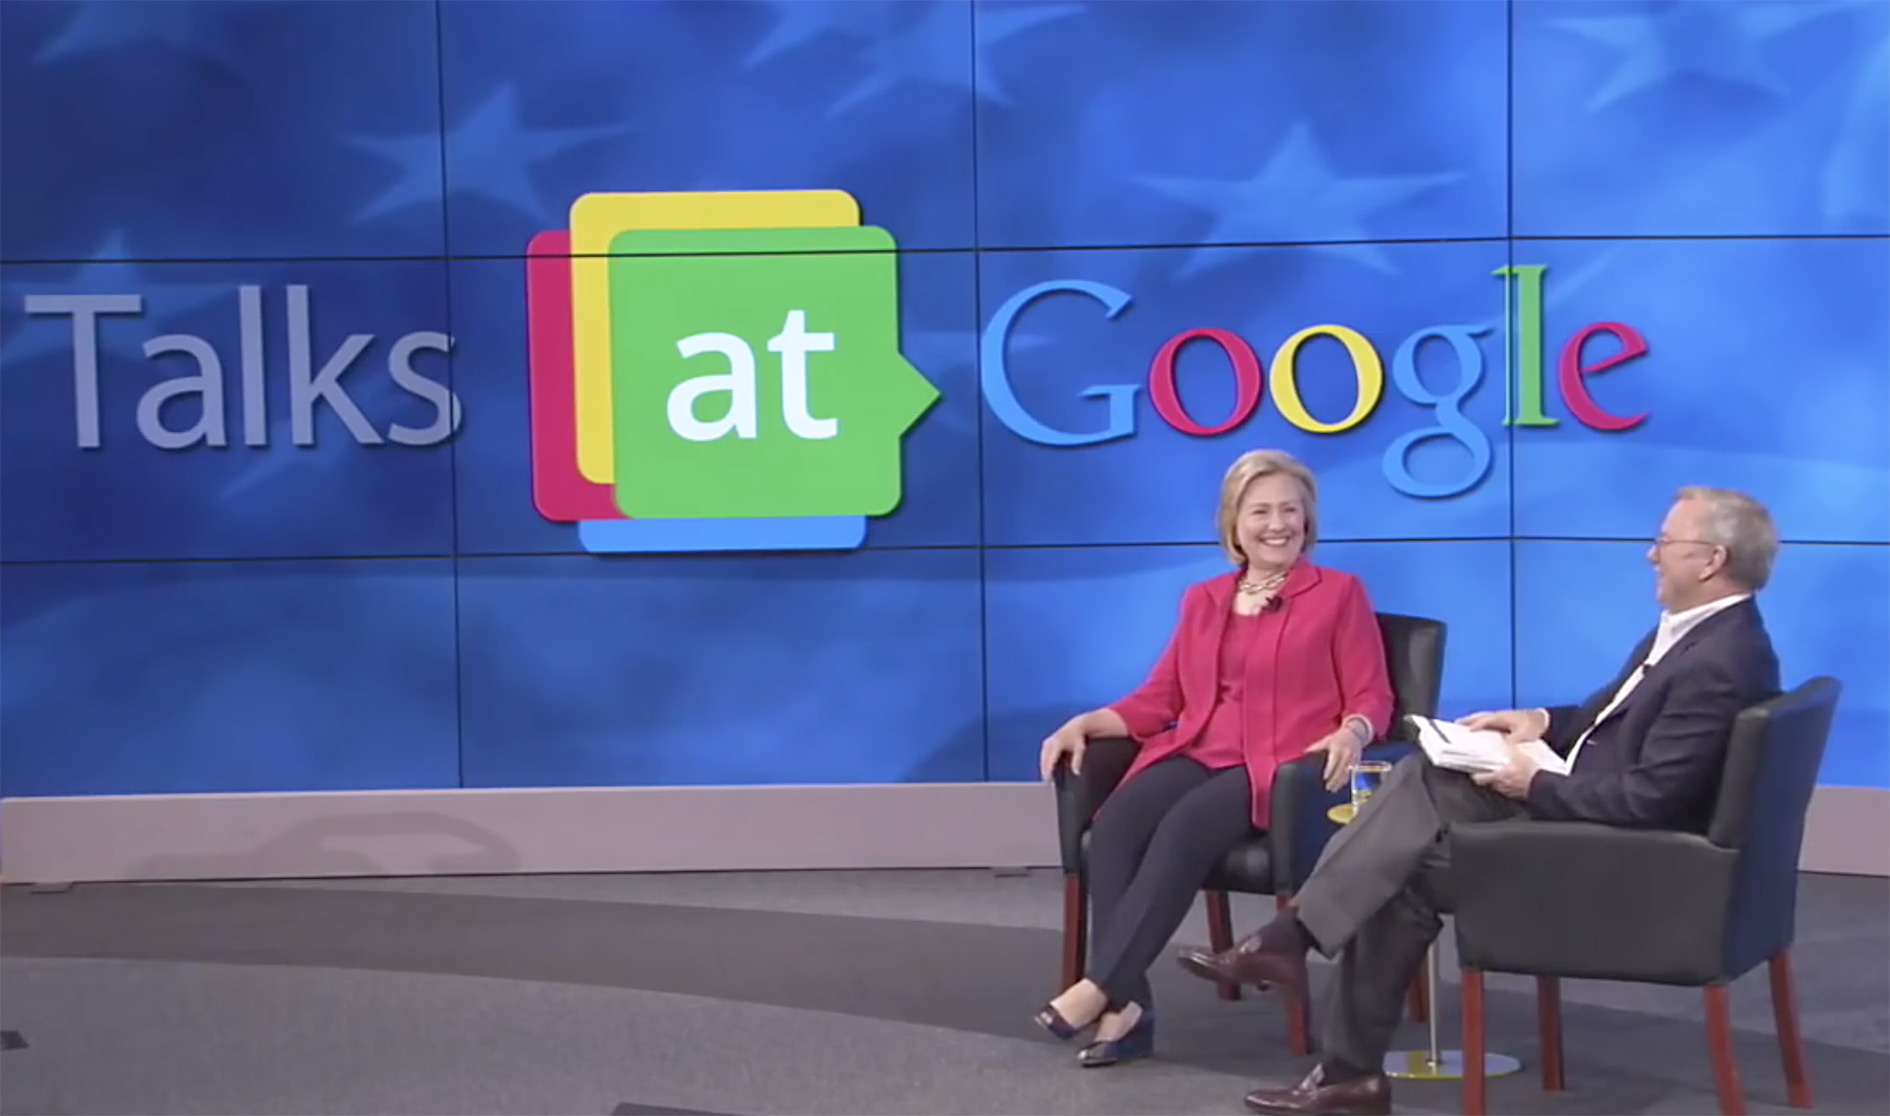 Former US Secretary of State Hillary Clinton, now running for the 2016 Democratic Party presidential nomination, stopped by the Googleplex for a 'fireside chat' with Eric Schmidt, July 2014.